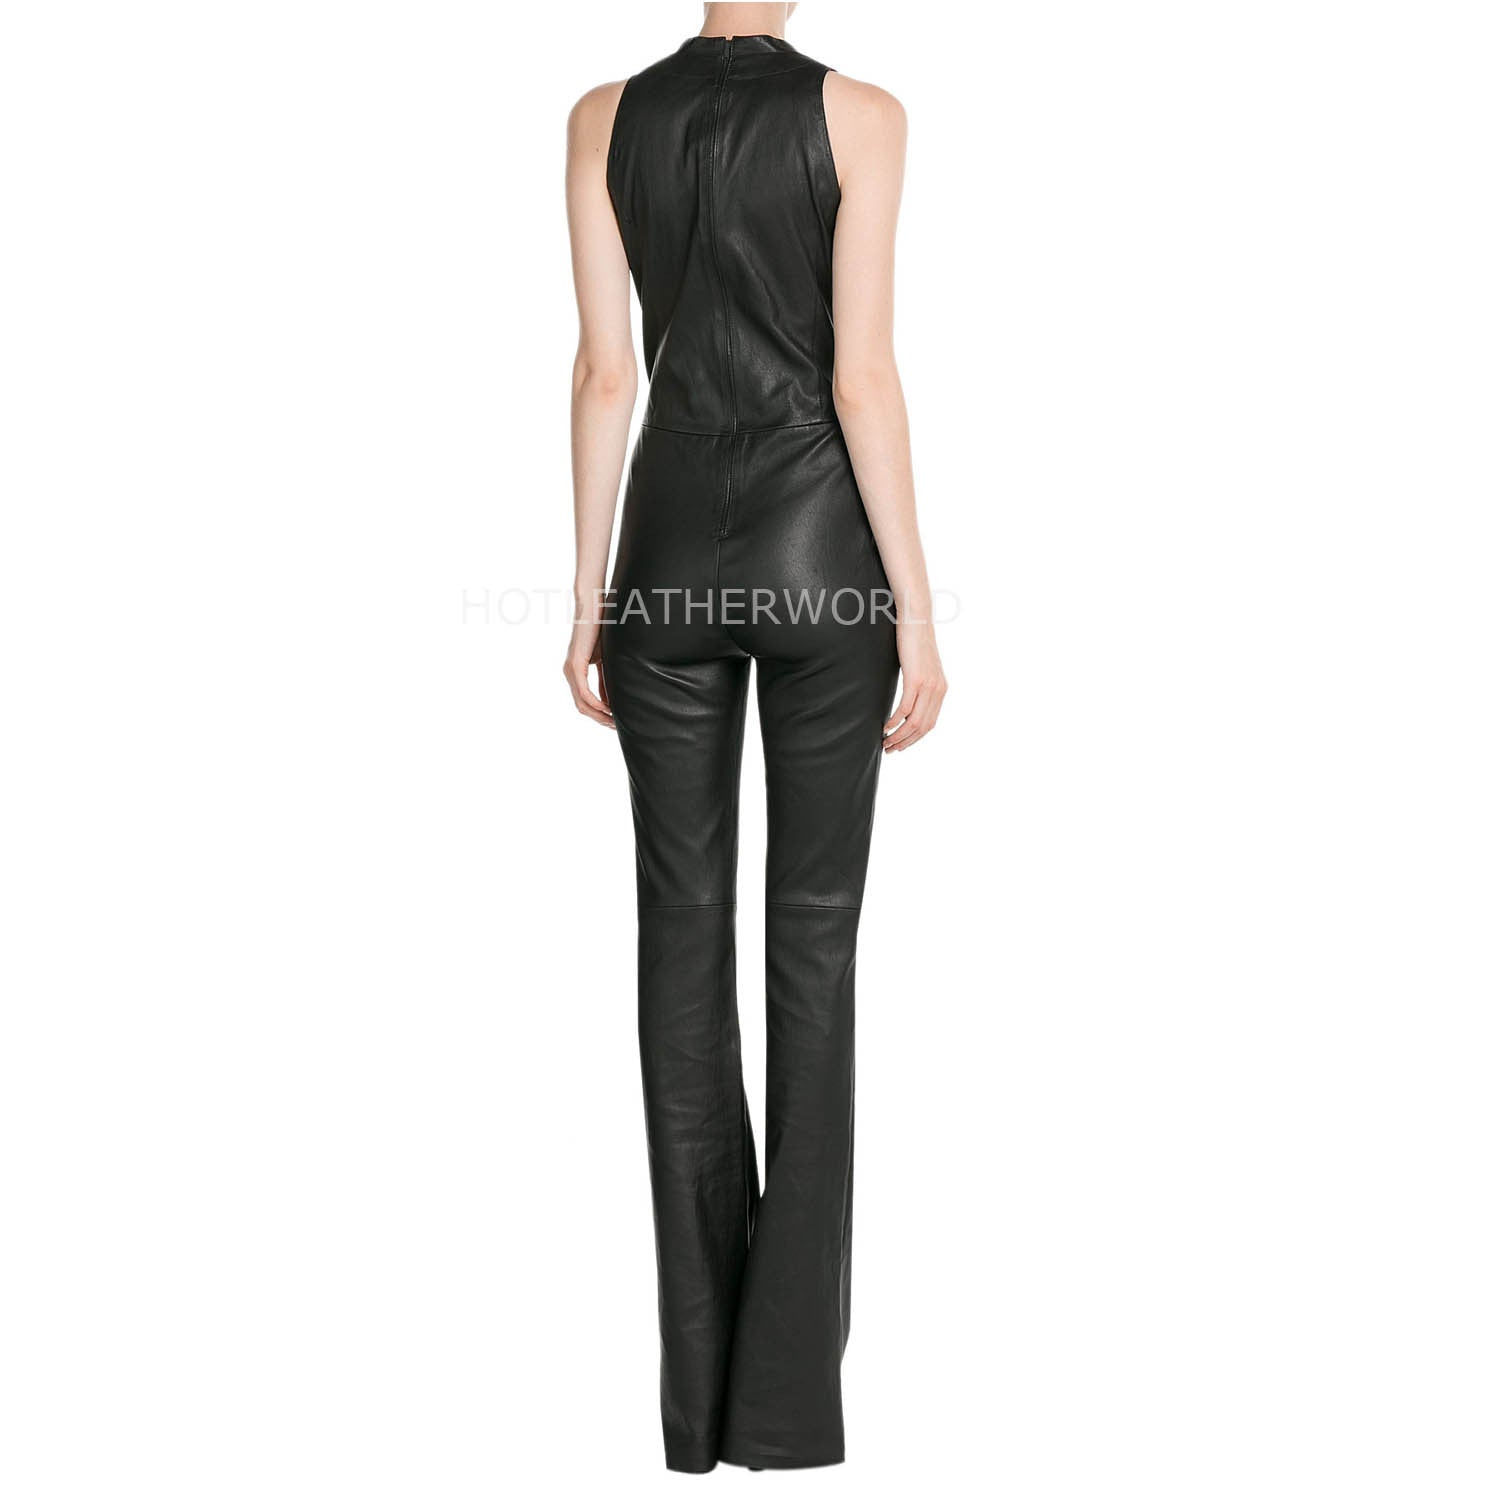 Paneled Sleeveless Women Leather Jumpsuit -  HOTLEATHERWORLD